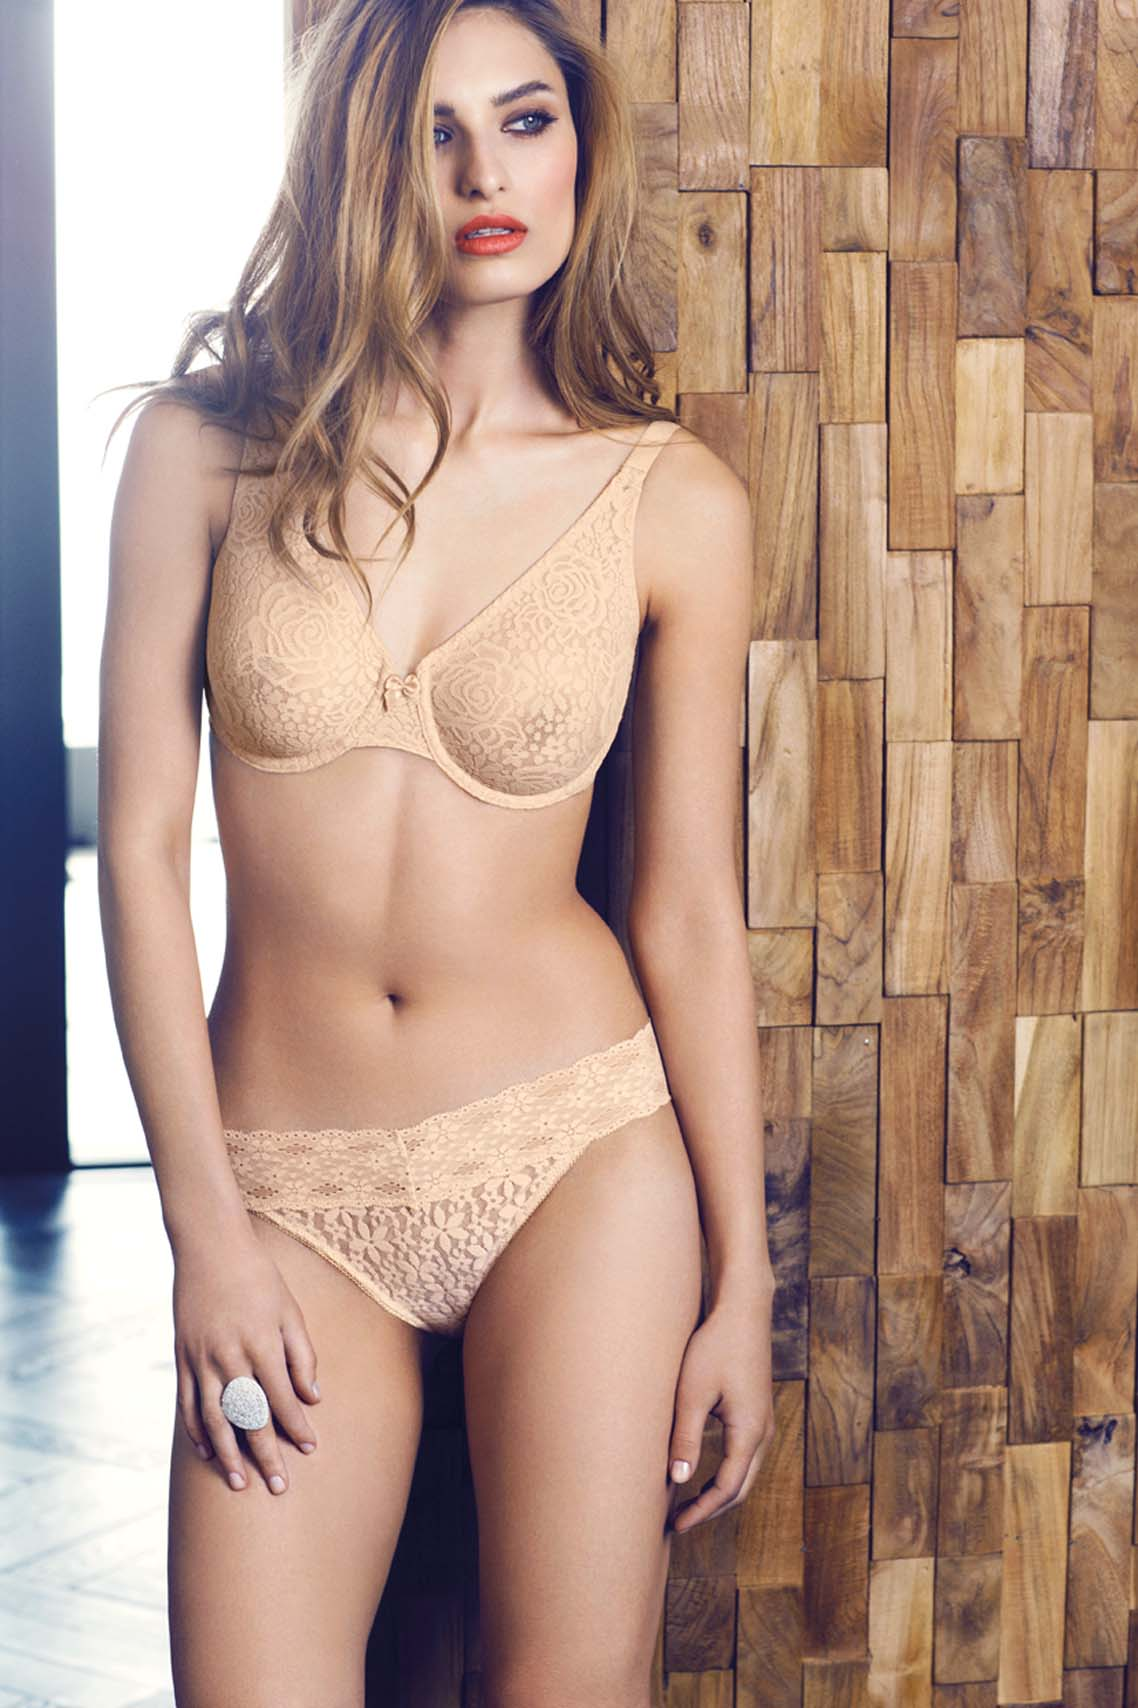 WACOAL-LINGERIE-HALO-LACE-NATURALLY-NUDE-MOULDED-UNDERWIRE-BRA-WA851205-HALO-THONG-WA879205-CONSUMER-WEB-SS16